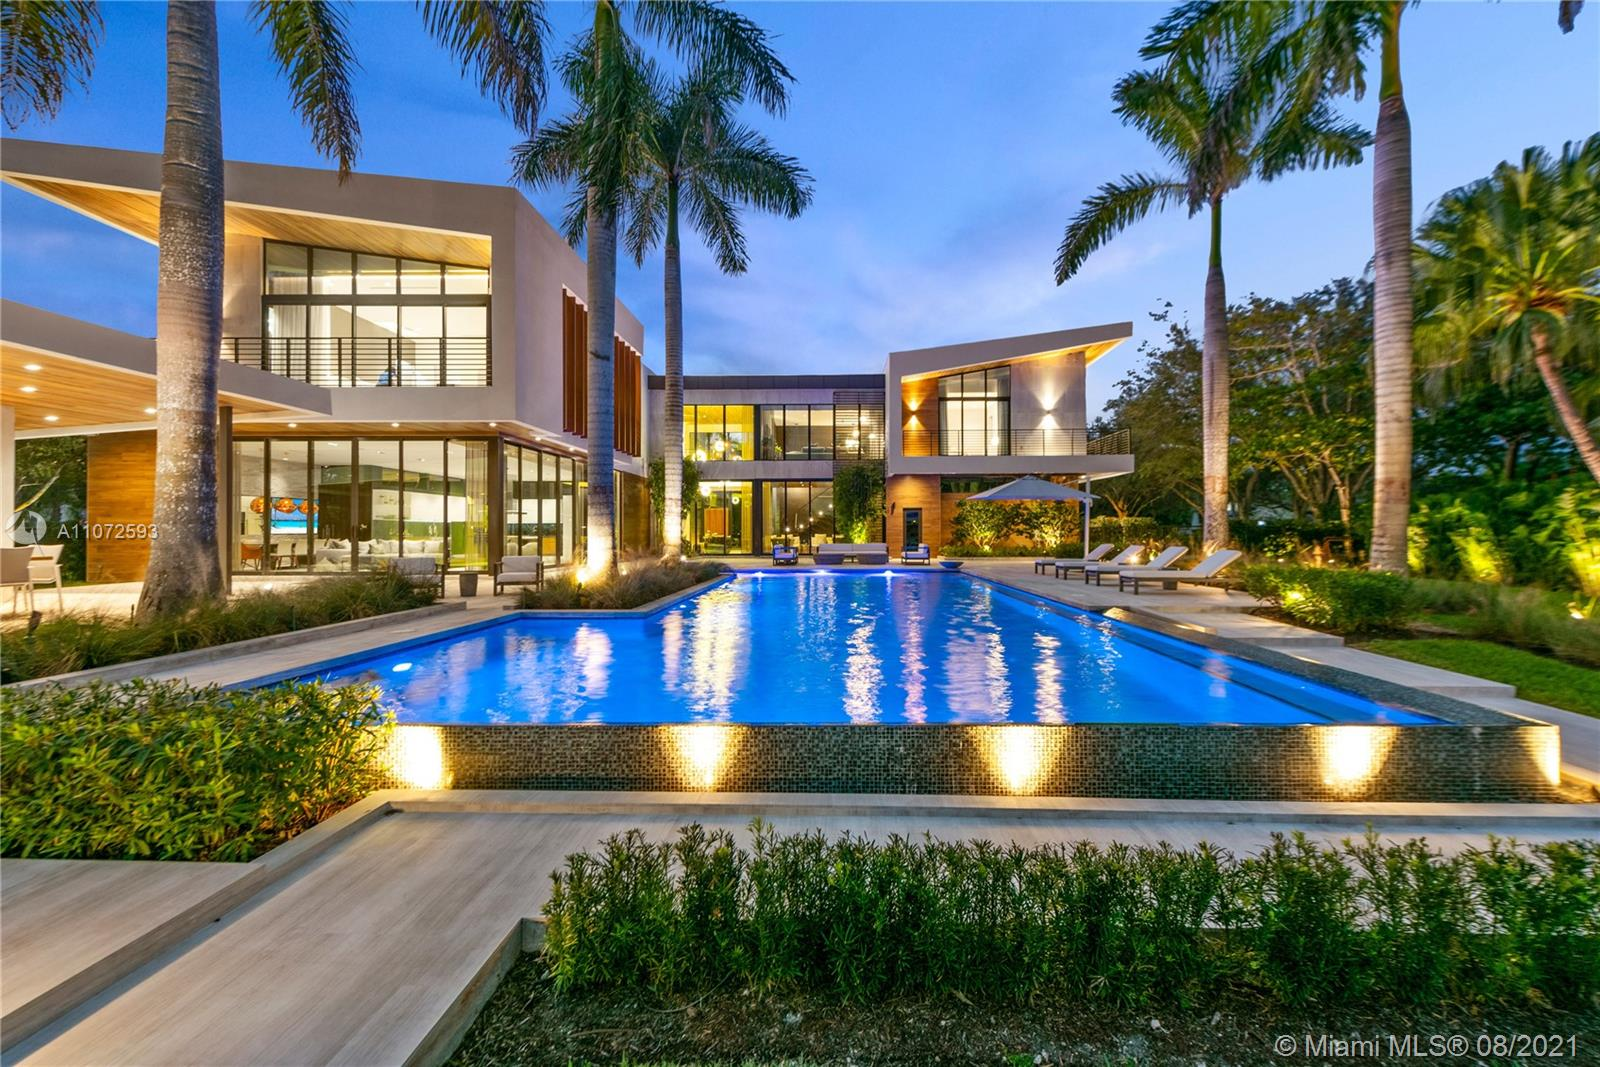 """A one of kind NEW MODERN MASTERPIECE that has been developed with incredible detail that exemplifies the true meaning of luxury. A Contemporary home by internationally known Varabyeu Designs. Situated in the most exclusive gated communities in Weston, on a 1.60 acre lot, this unique home overlooks a spectacular long open lake view. State of the art features: HD security cameras with commercial grade system (13 cameras). Smart home with savant system controlling all lights, surround system throughout home/pool & cameras, accessible from anywhere in the world. Full house generator & top of the line appliances w/ a expansive Butler's pantry. The """"resort"""" feel & architect of this home is one to see. An opportunity to own a piece of art in Weston. Furnished. Features sheet attached."""